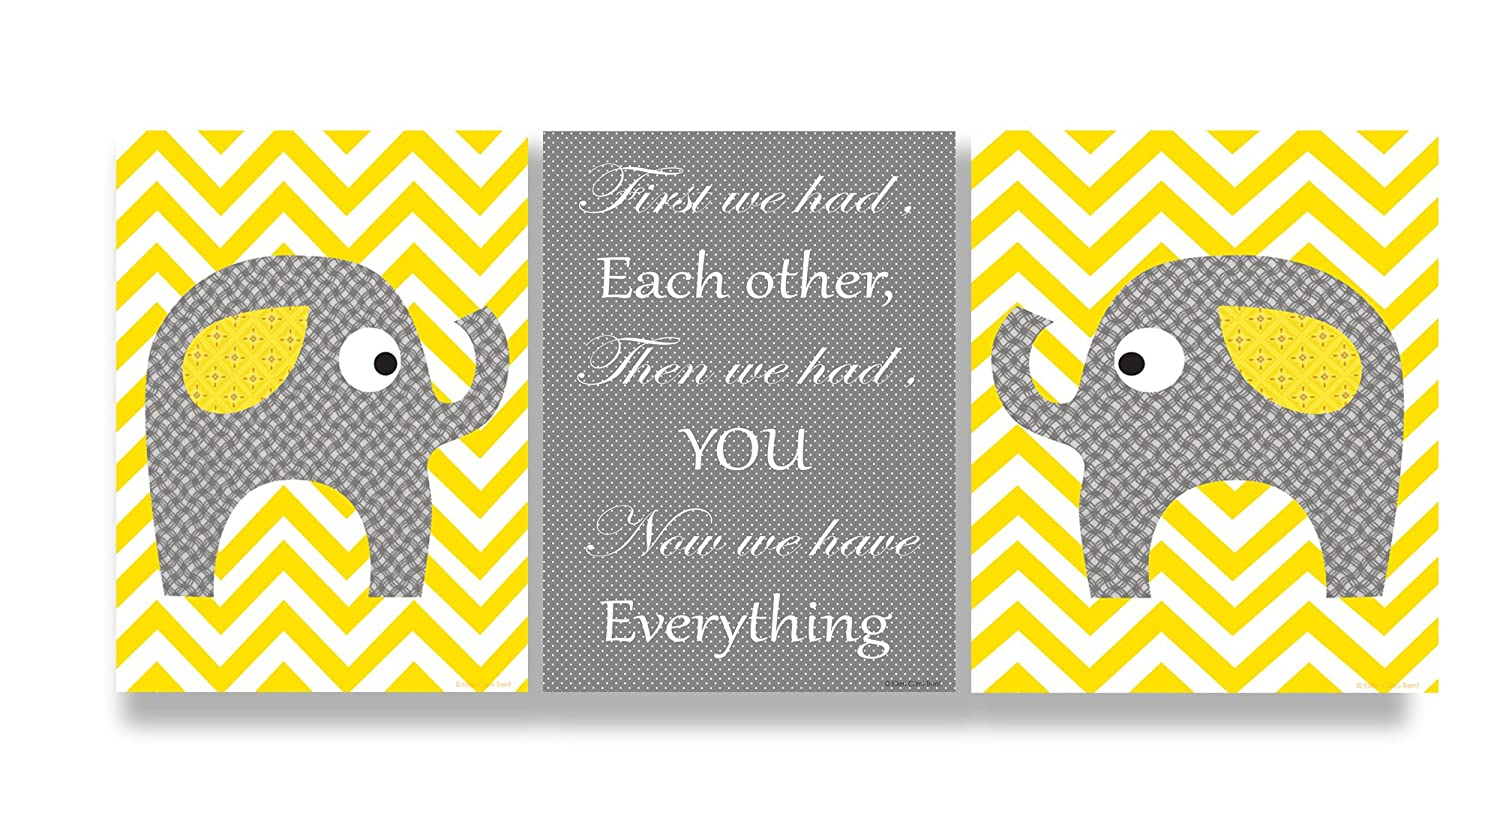 Amazon.com: The Kids Room by Stupell Grey Elephants On Yellow ...